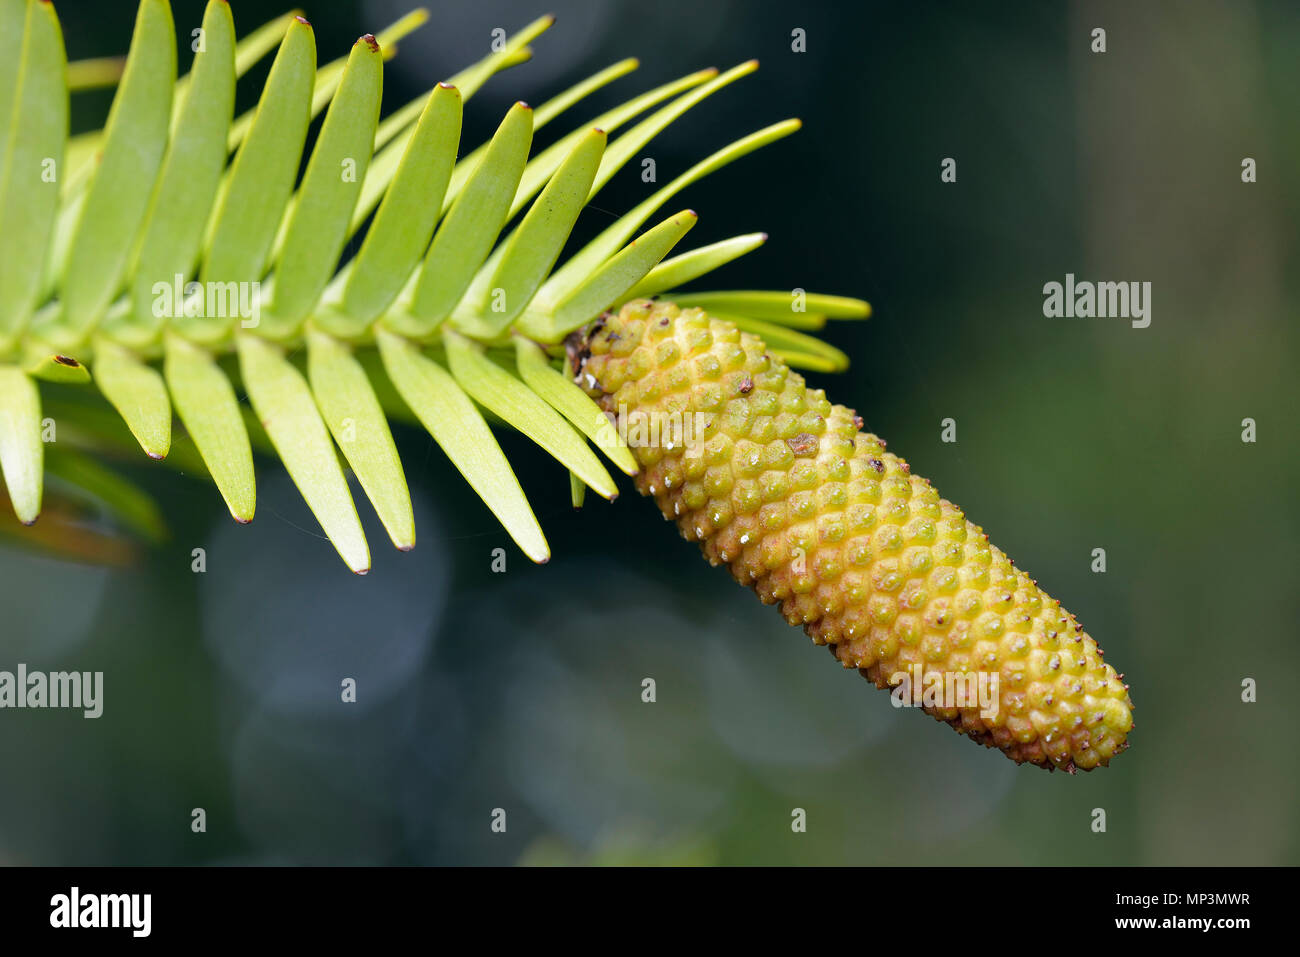 Cone of Wollemi Pine - Wollemia nobilis Ancient Tree species from Wollemi National Park in New South Wales, Australia - Stock Image